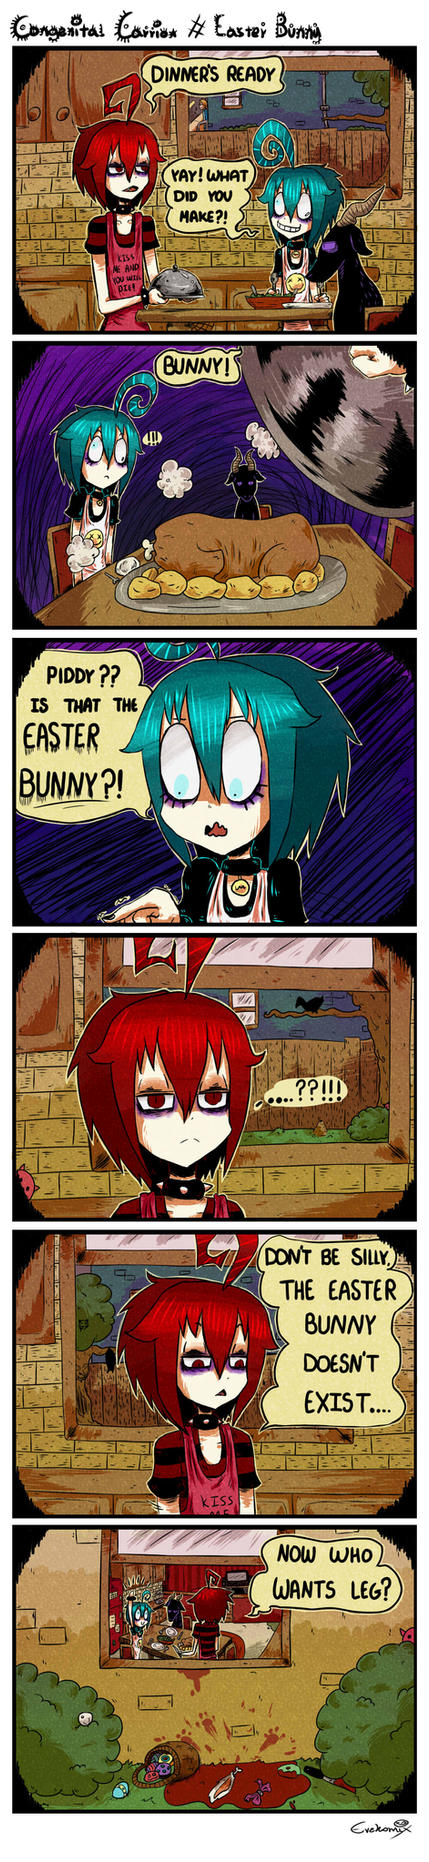 Congenital Carrion #  Easter Bunny by evekomix